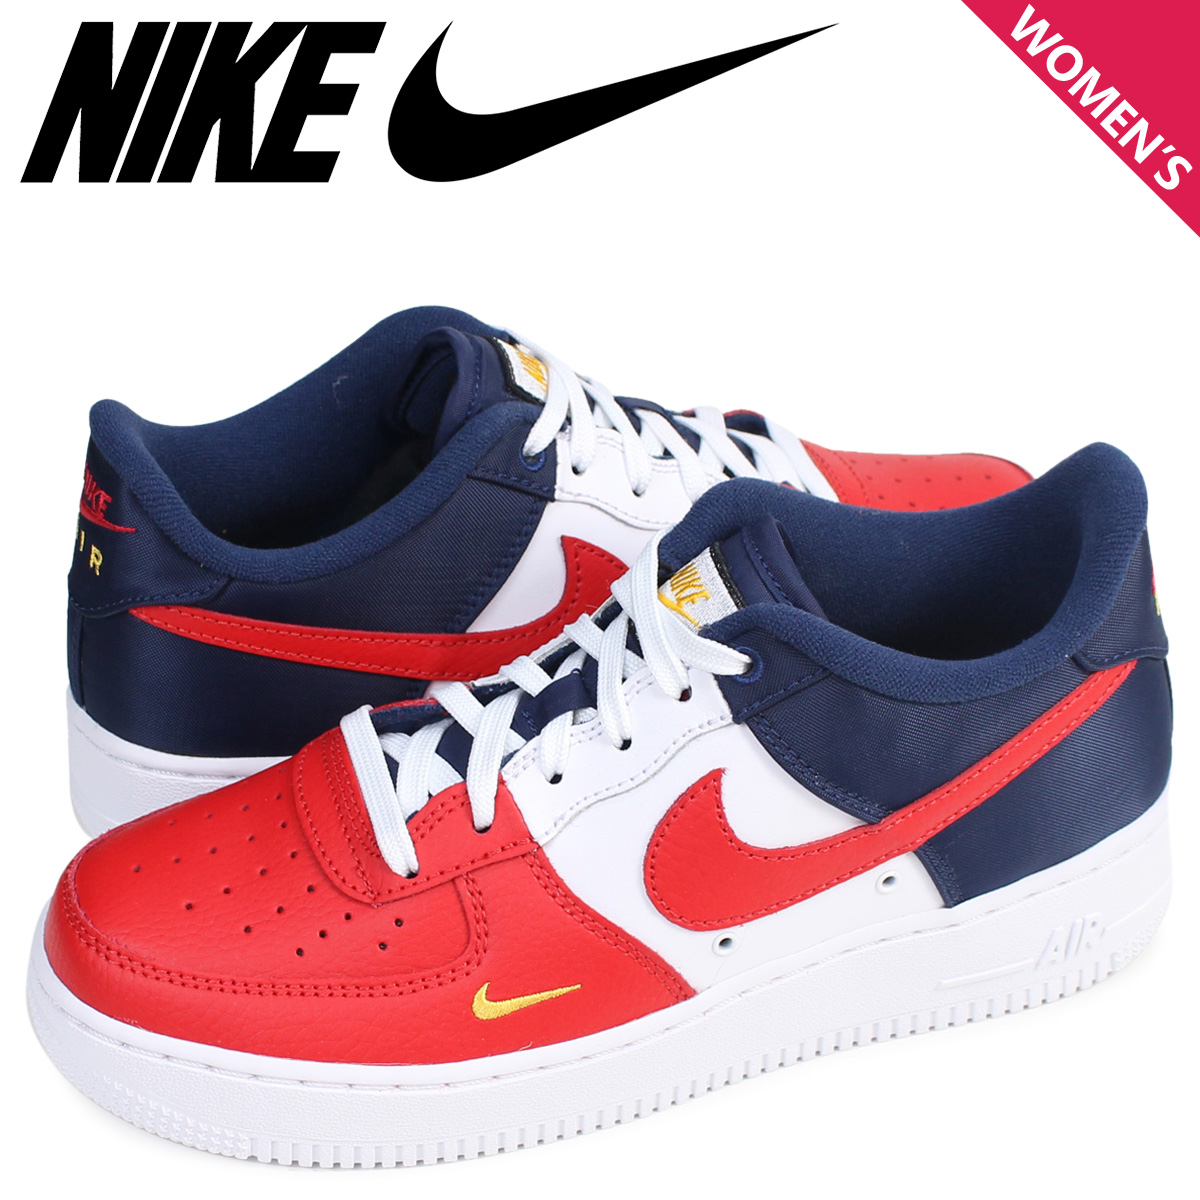 buy online 3baee 80d7d ALLSPORTS  NIKE Nike air force 1 07 LV8 Lady s sneakers AIR FORCE 1 LOW INDEPENDENCE  DAY 820,438-603 shoes red  load planned Shinnyu load in reservation ...